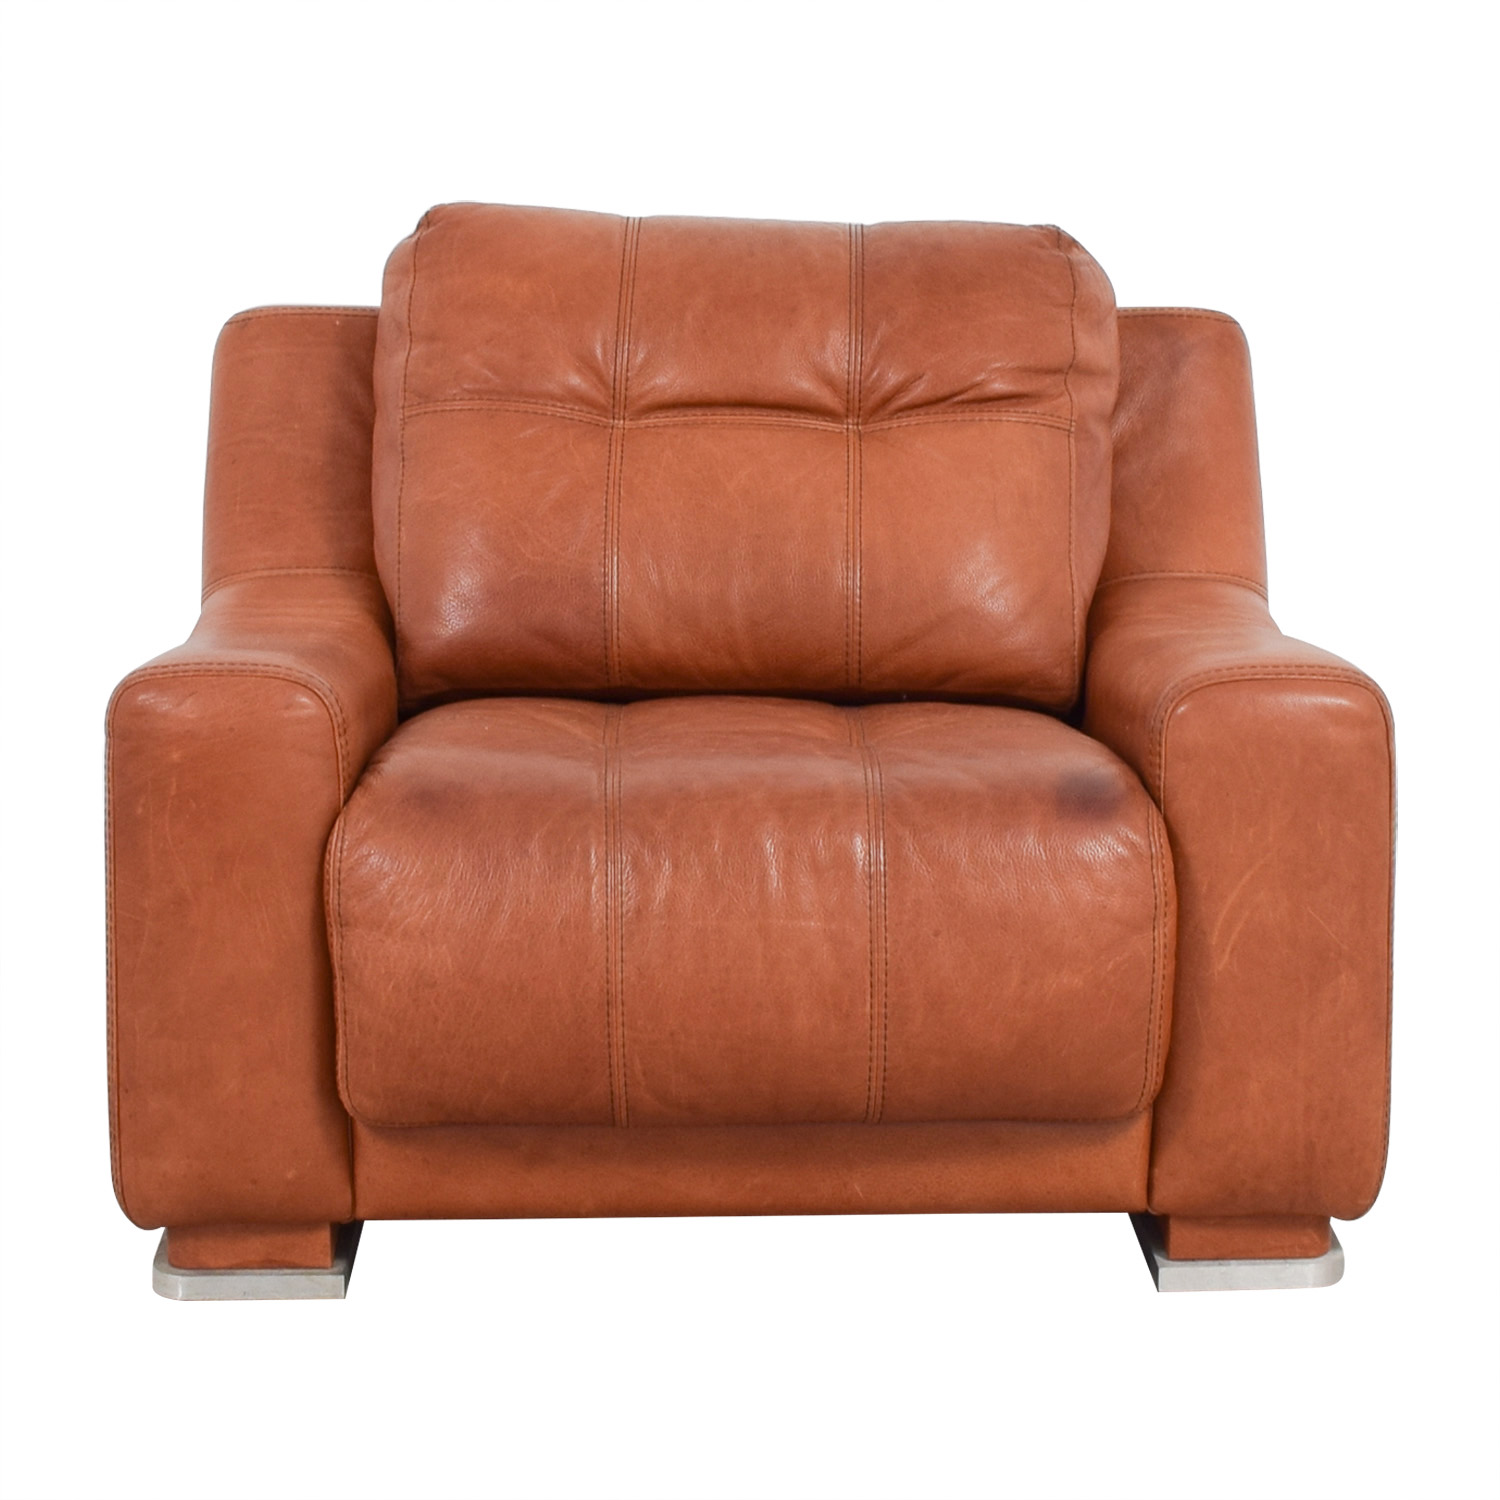 shop Contempo Contempo Leather Accent Chair online